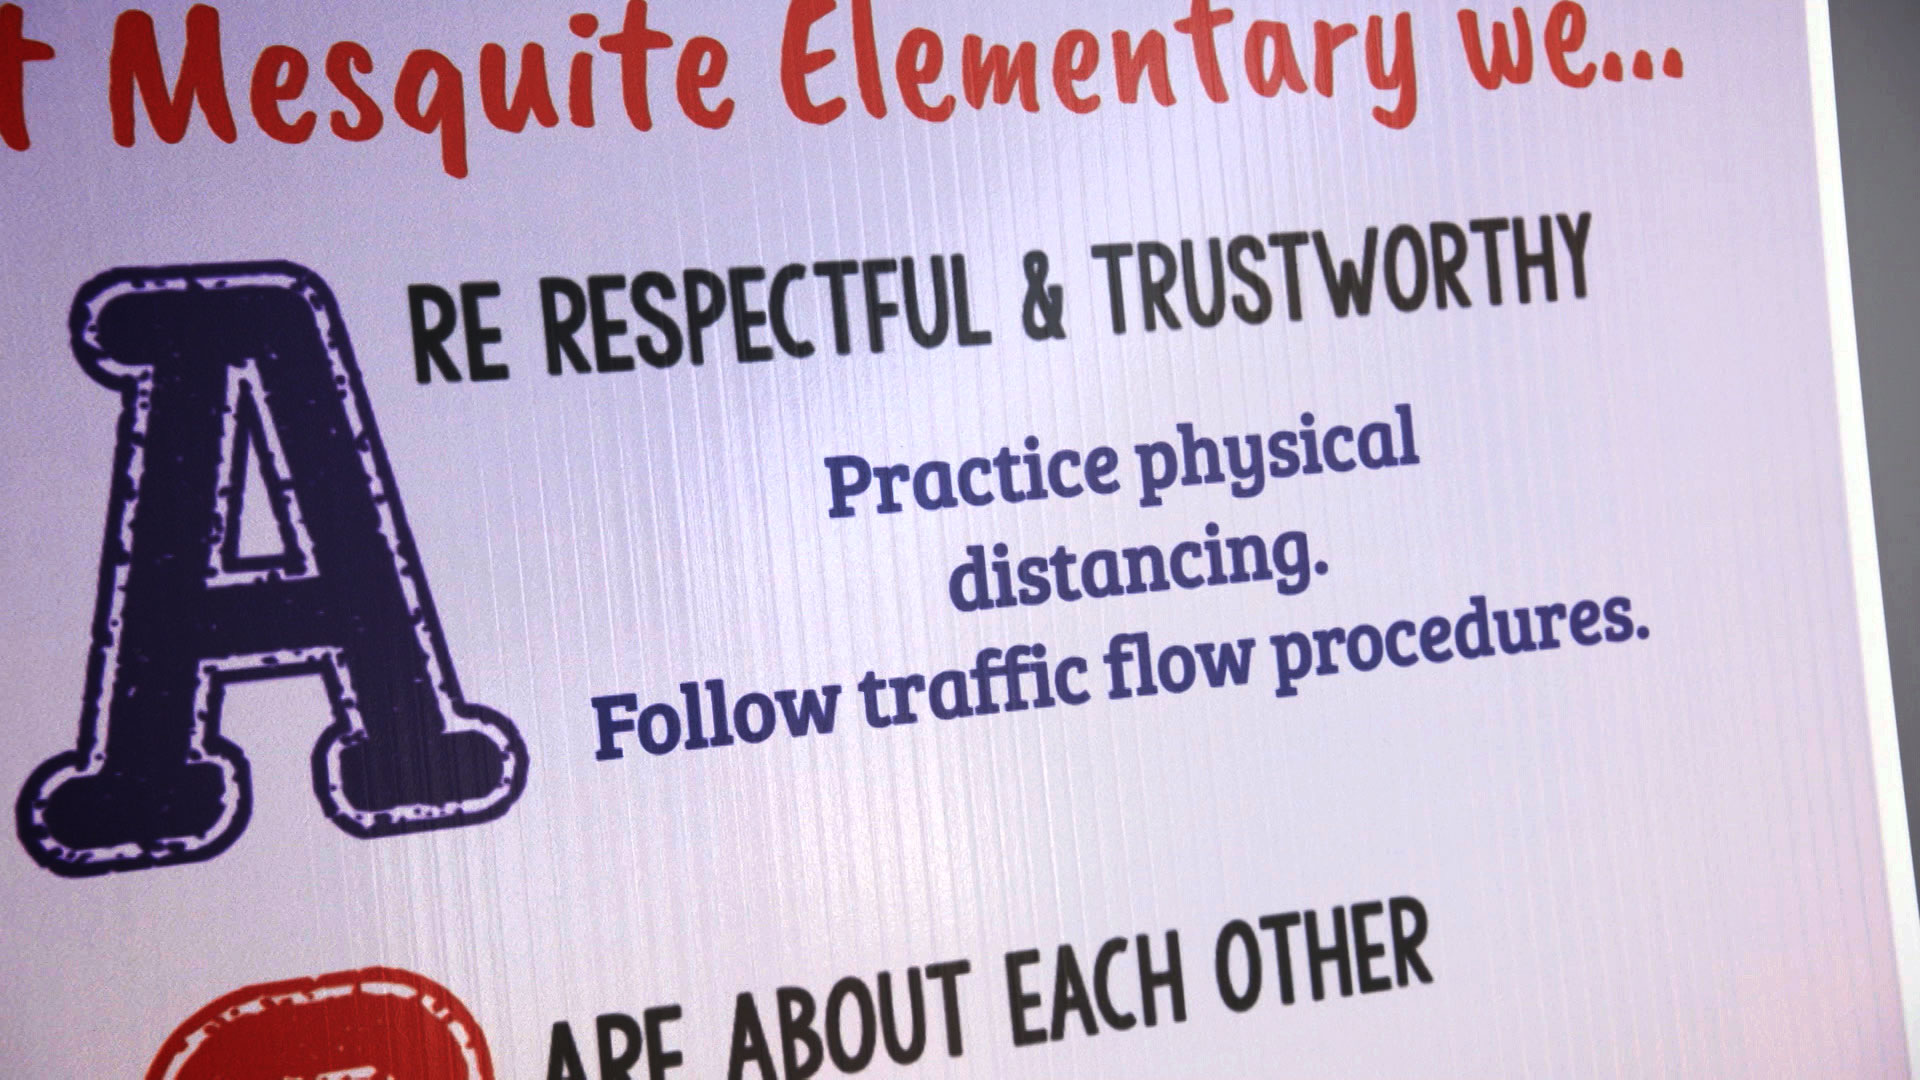 Signage posted at Mesquite Elementary in the Vail School District encourages students to practice social distancing and take other safeguards against COVID-19. August 10, 2020.